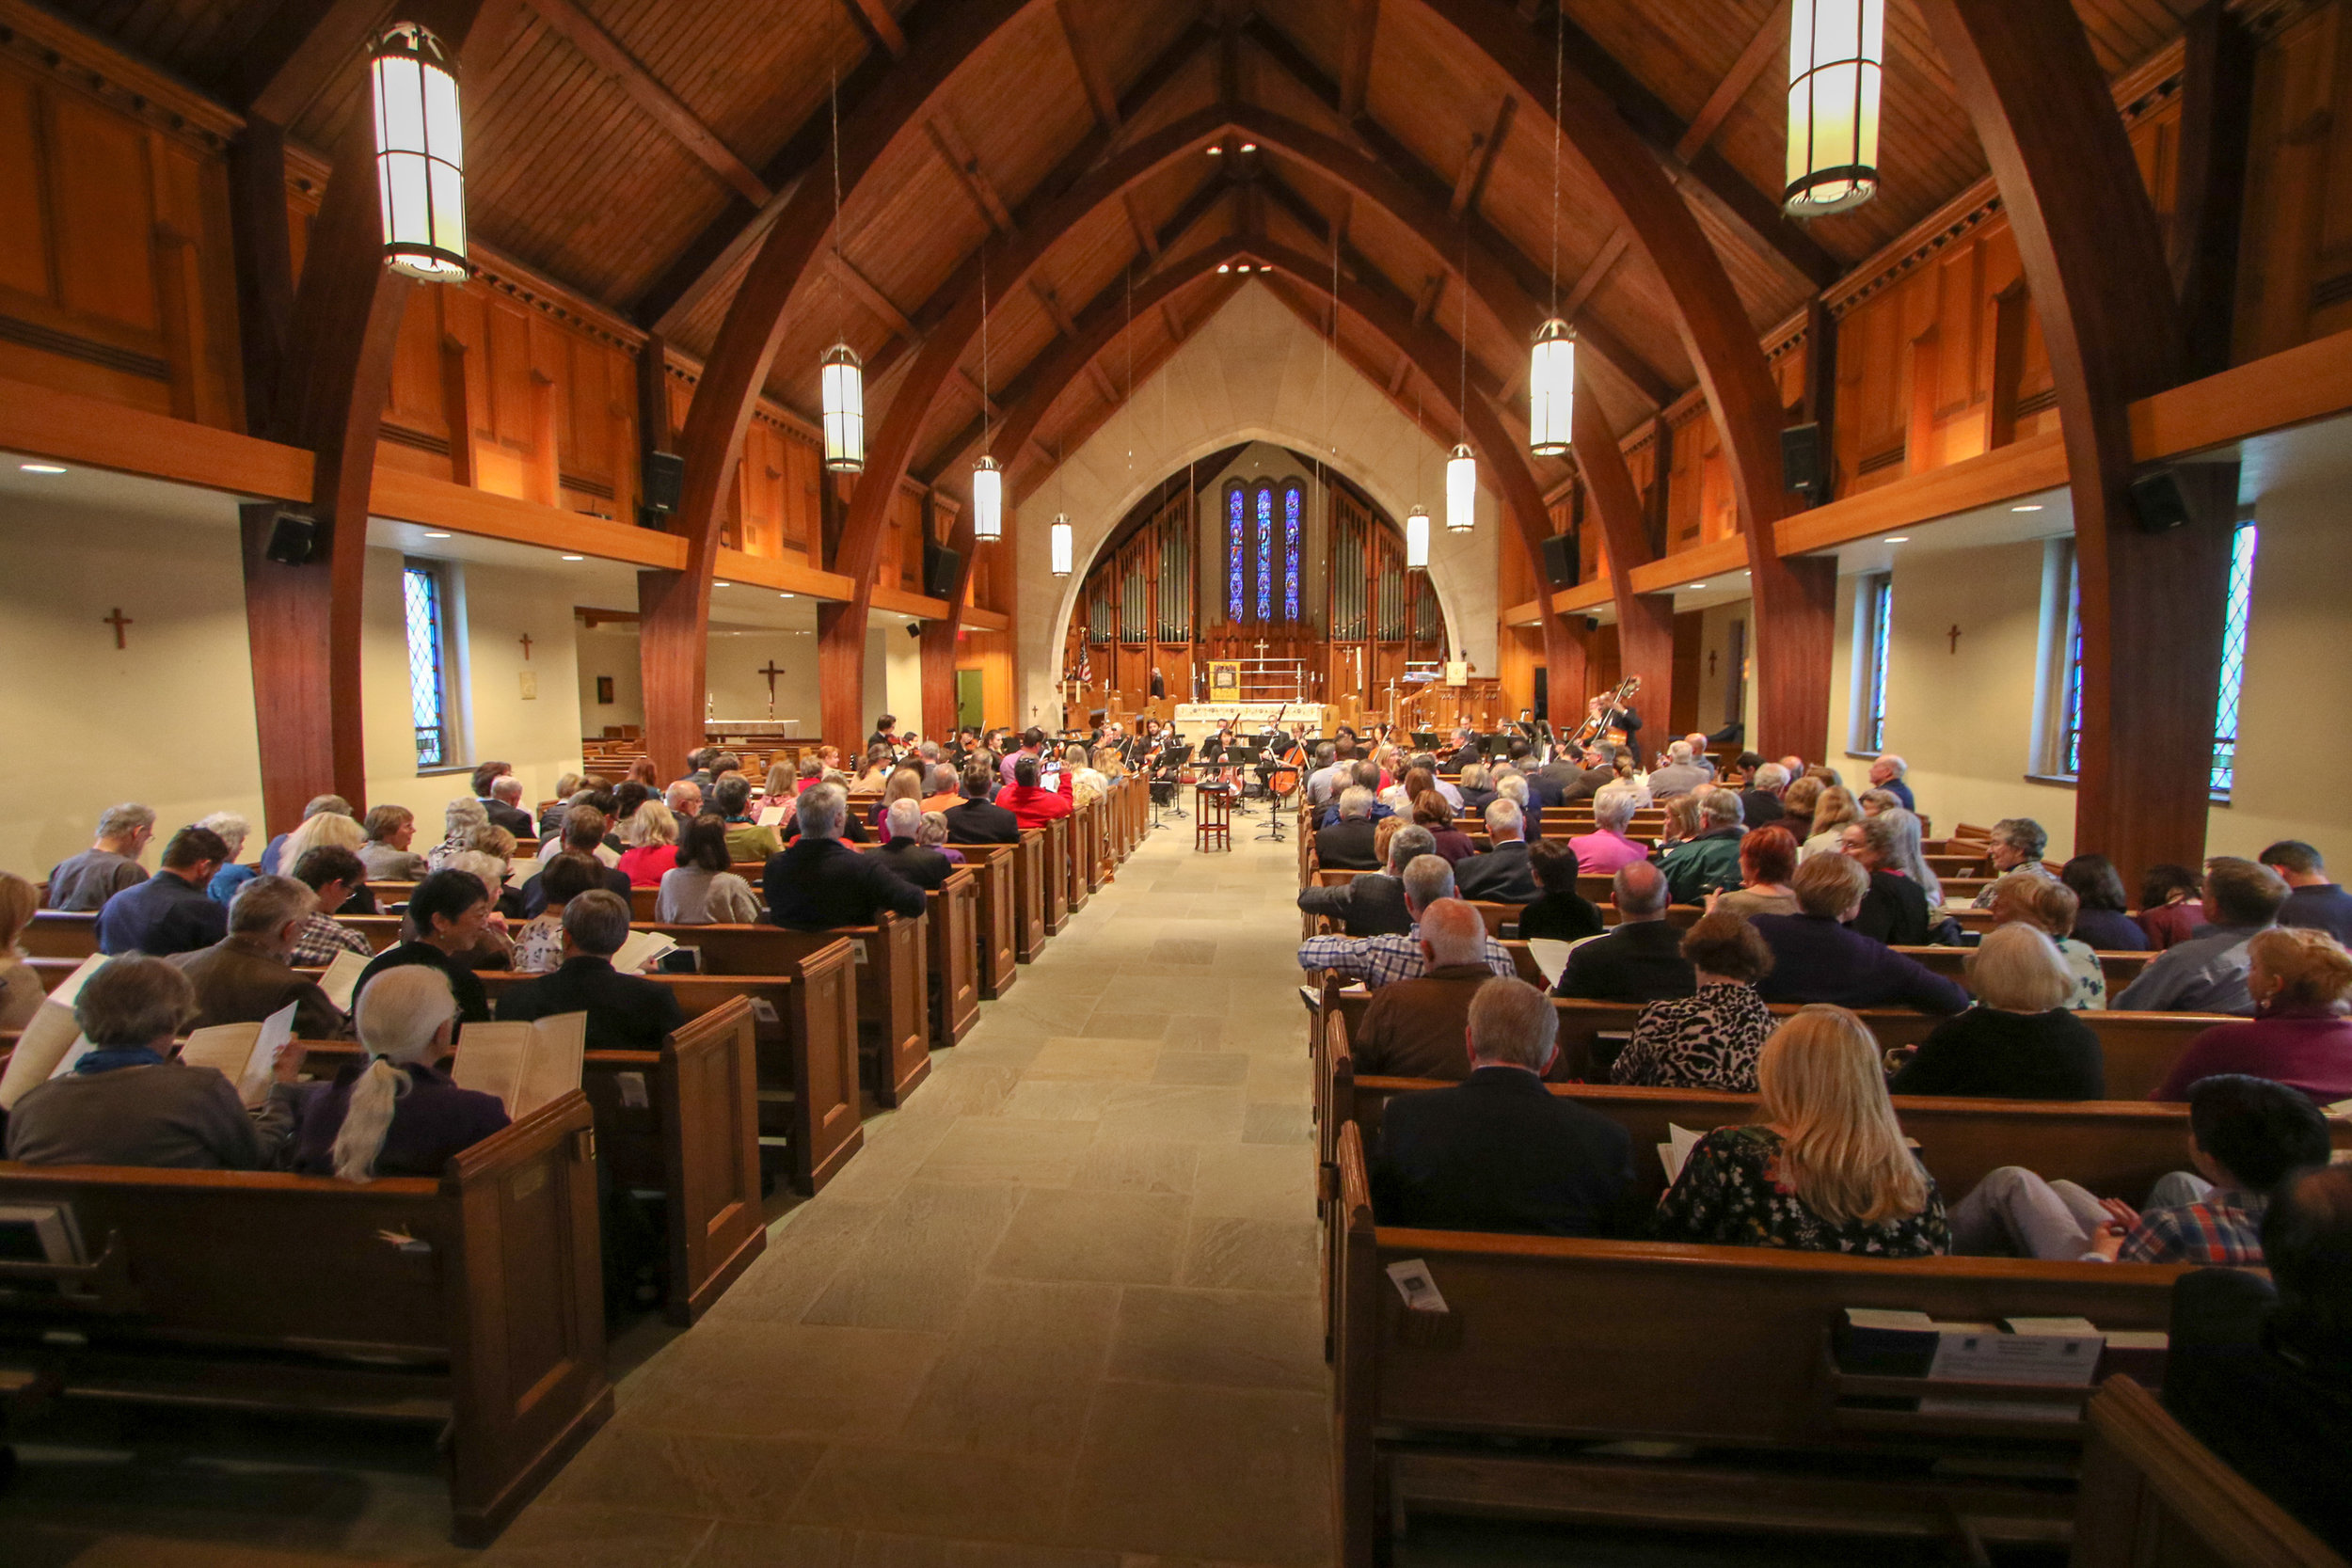 Support Steeple Concerts - Ticket sales only cover a portion of the operating expenses of the series. Your secure online contribution gives us the opportunity to maintain the highest level of performance while still being both accessible and affordable for our audiences.